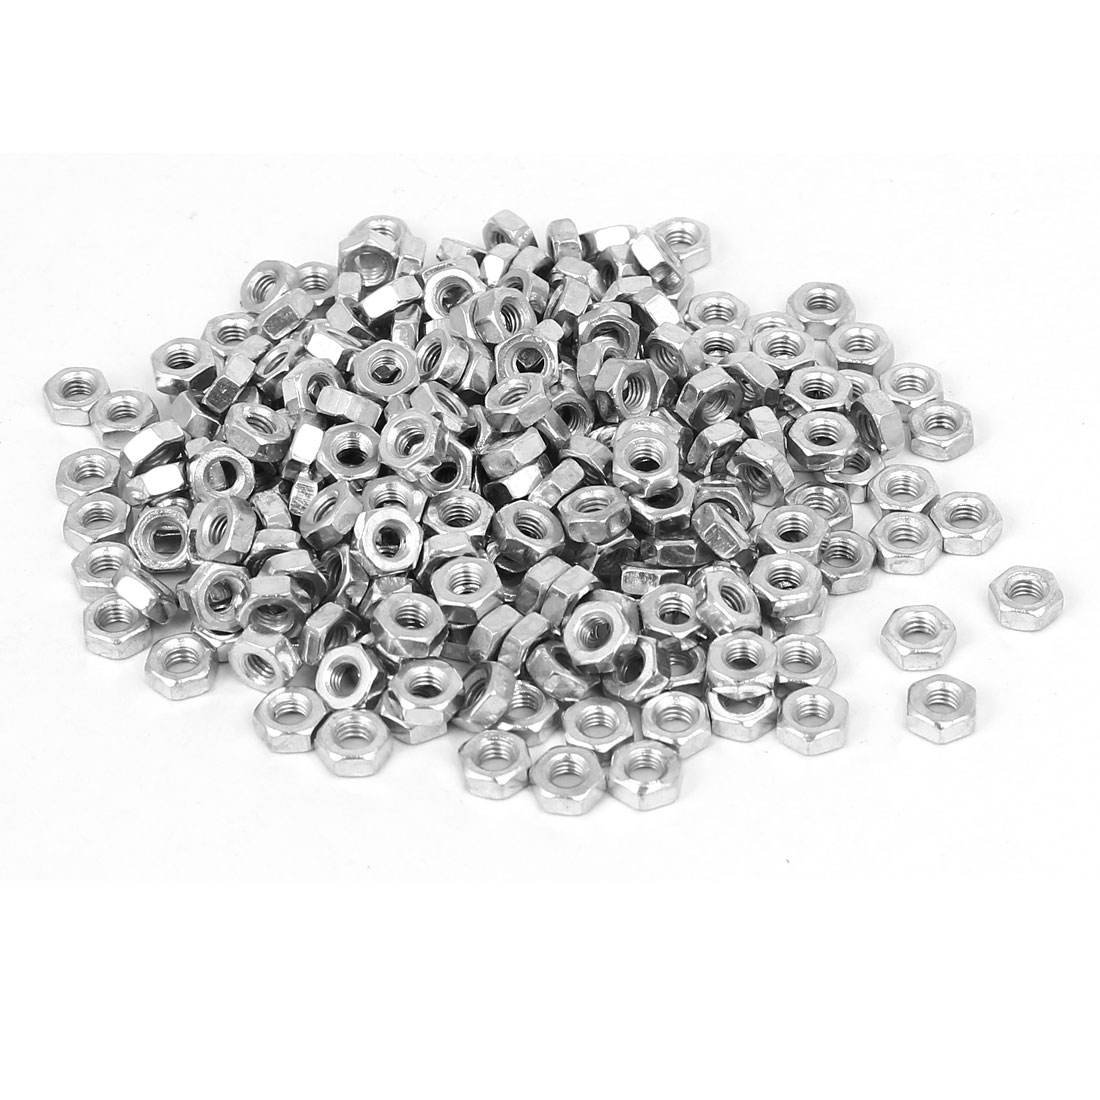 M3 x 2.5mm Iron Zinc Plated Machine Screw Hex Hexagon Nuts Fastener 200pcs